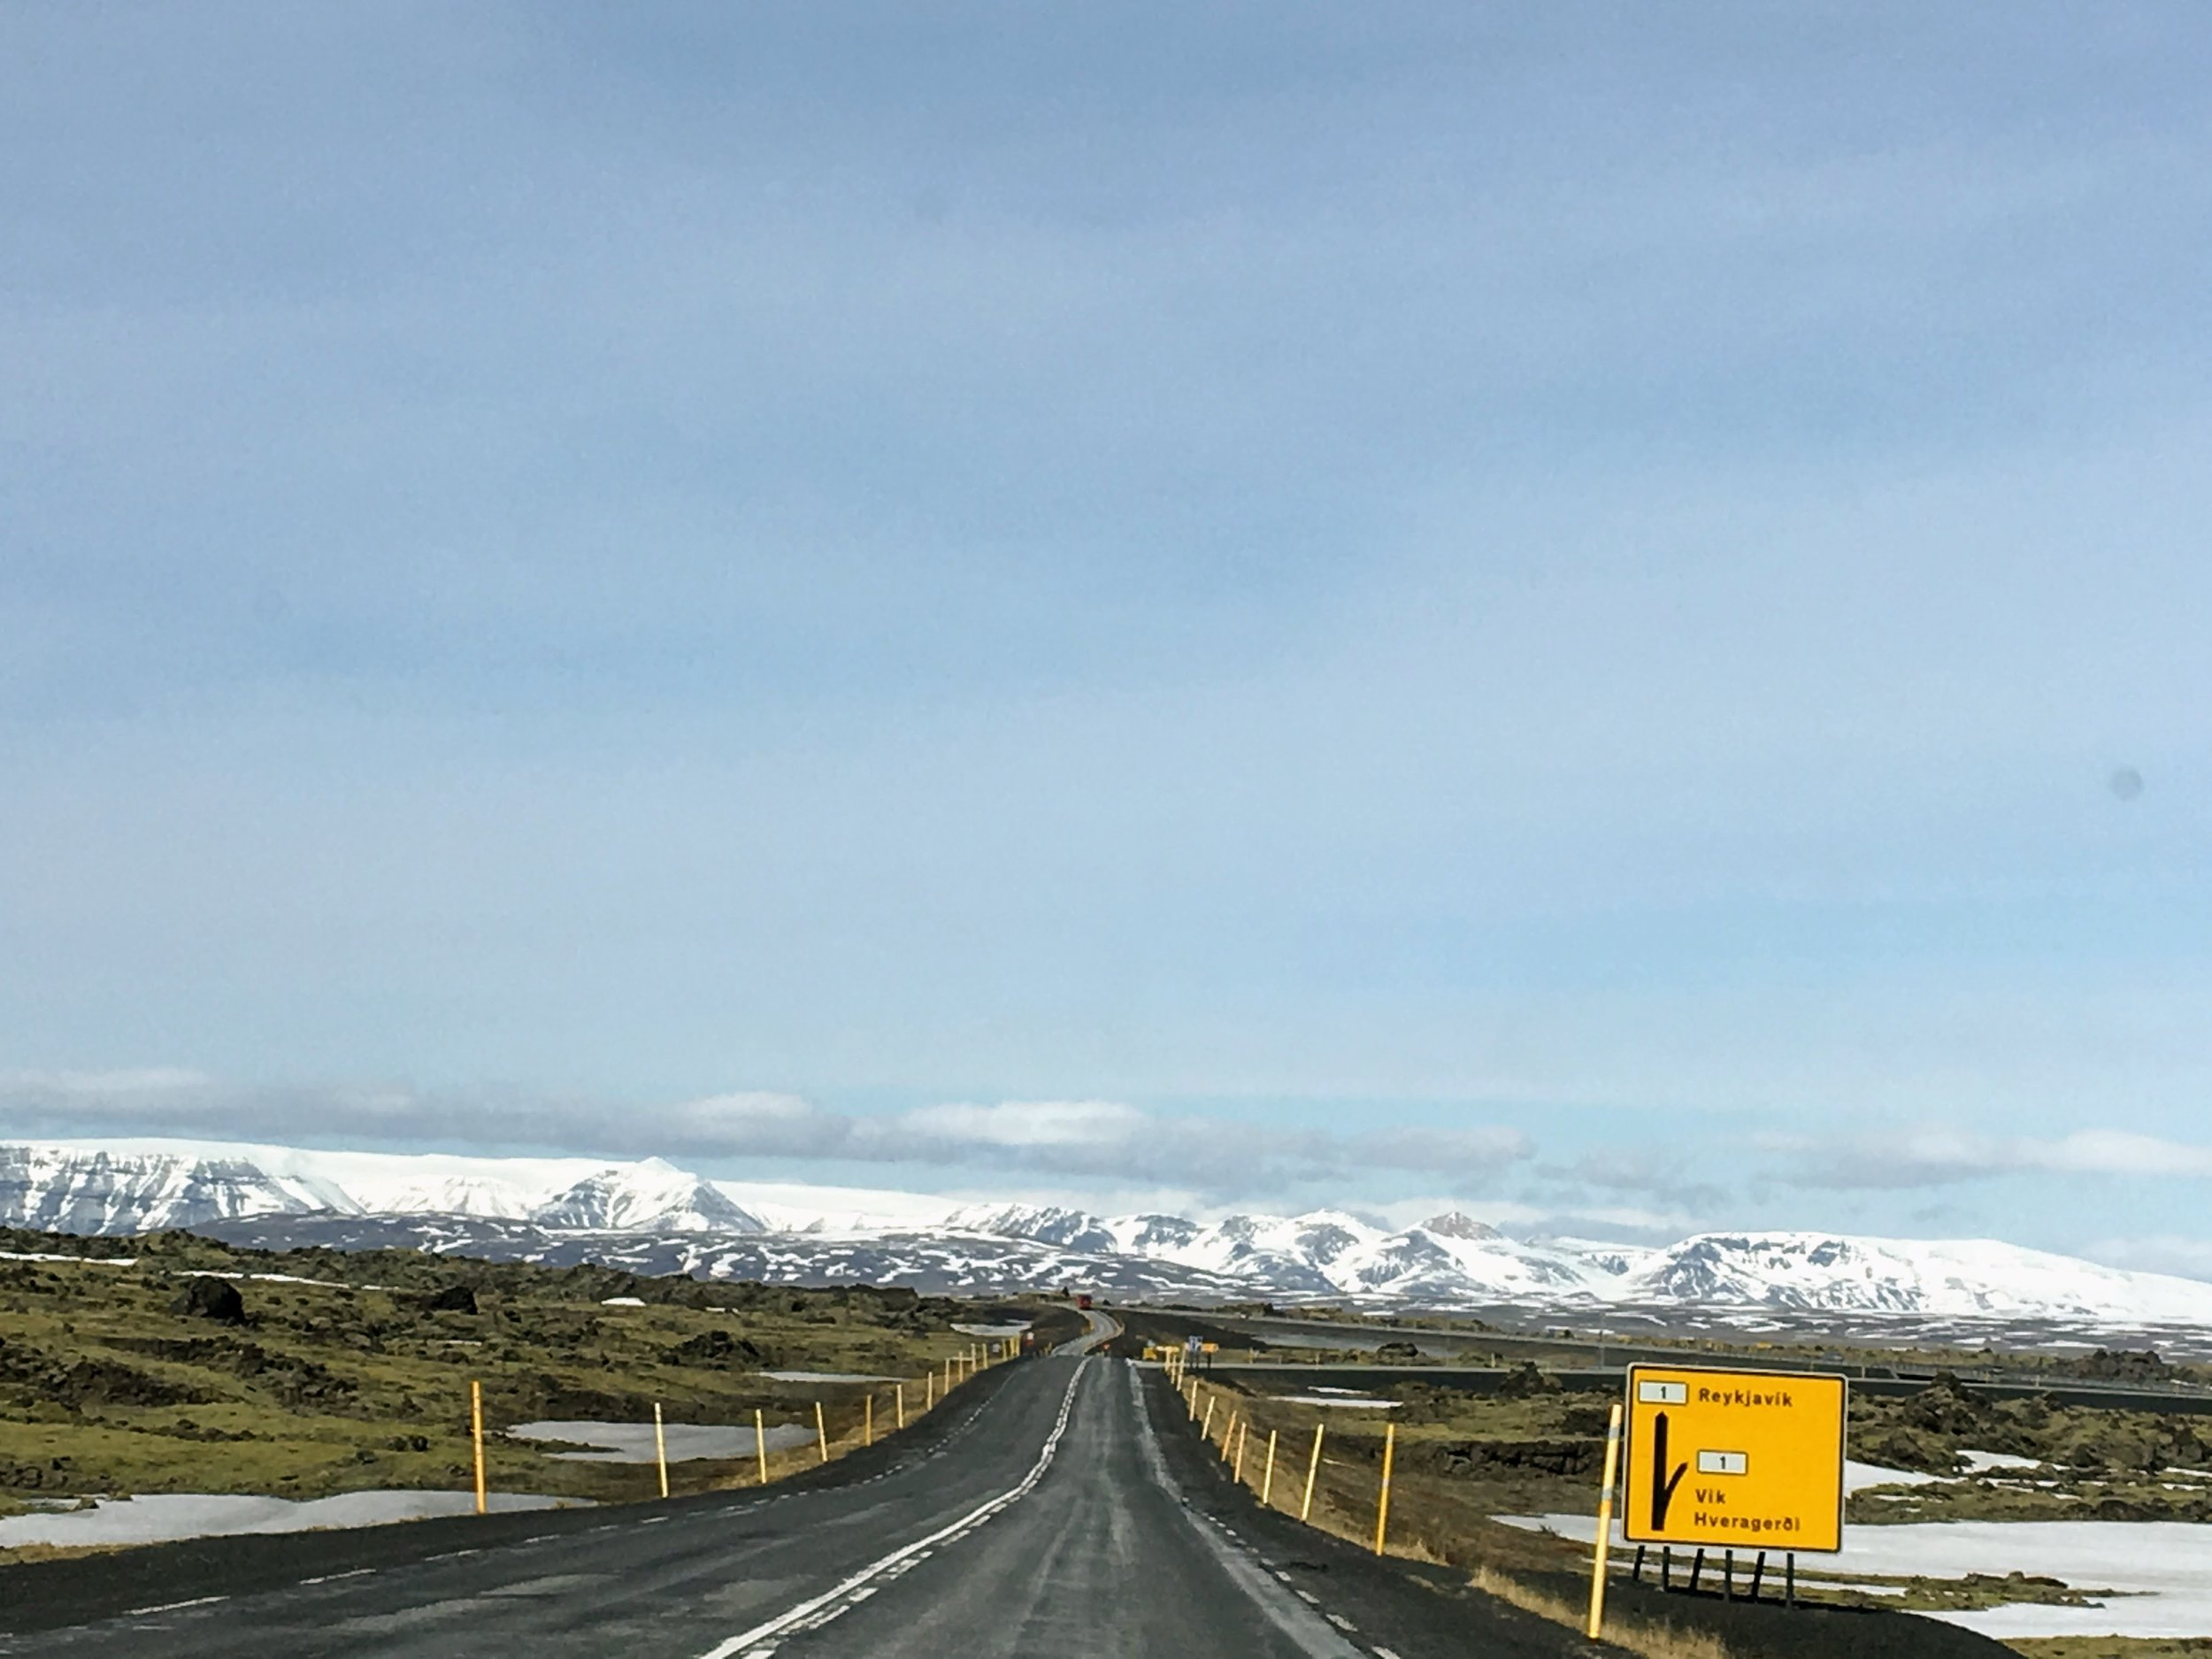 Road in Iceland - 55 by 55 Travel